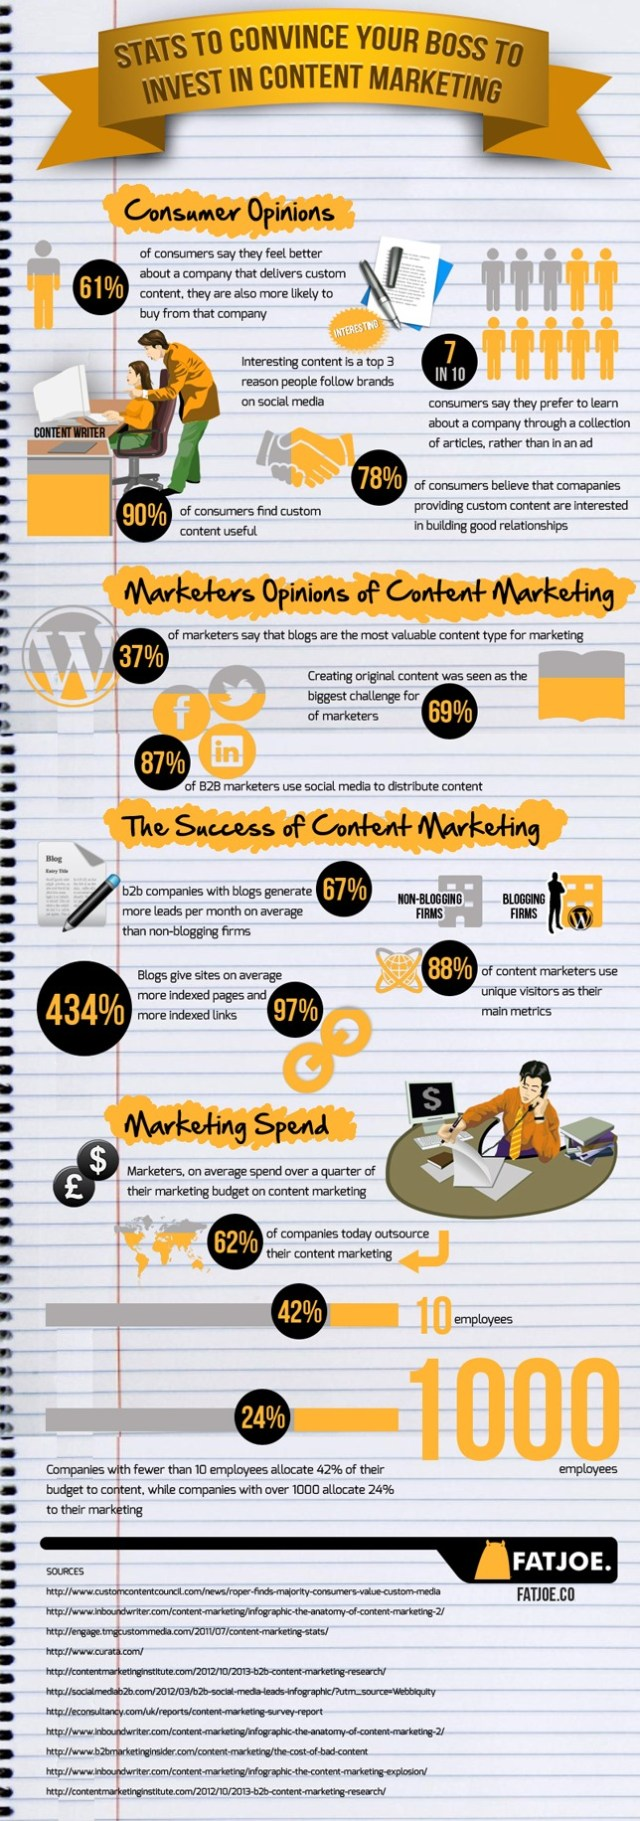 Stats-to-Convince-Your-Boss-to-Invest-in-Content-Marketing-1